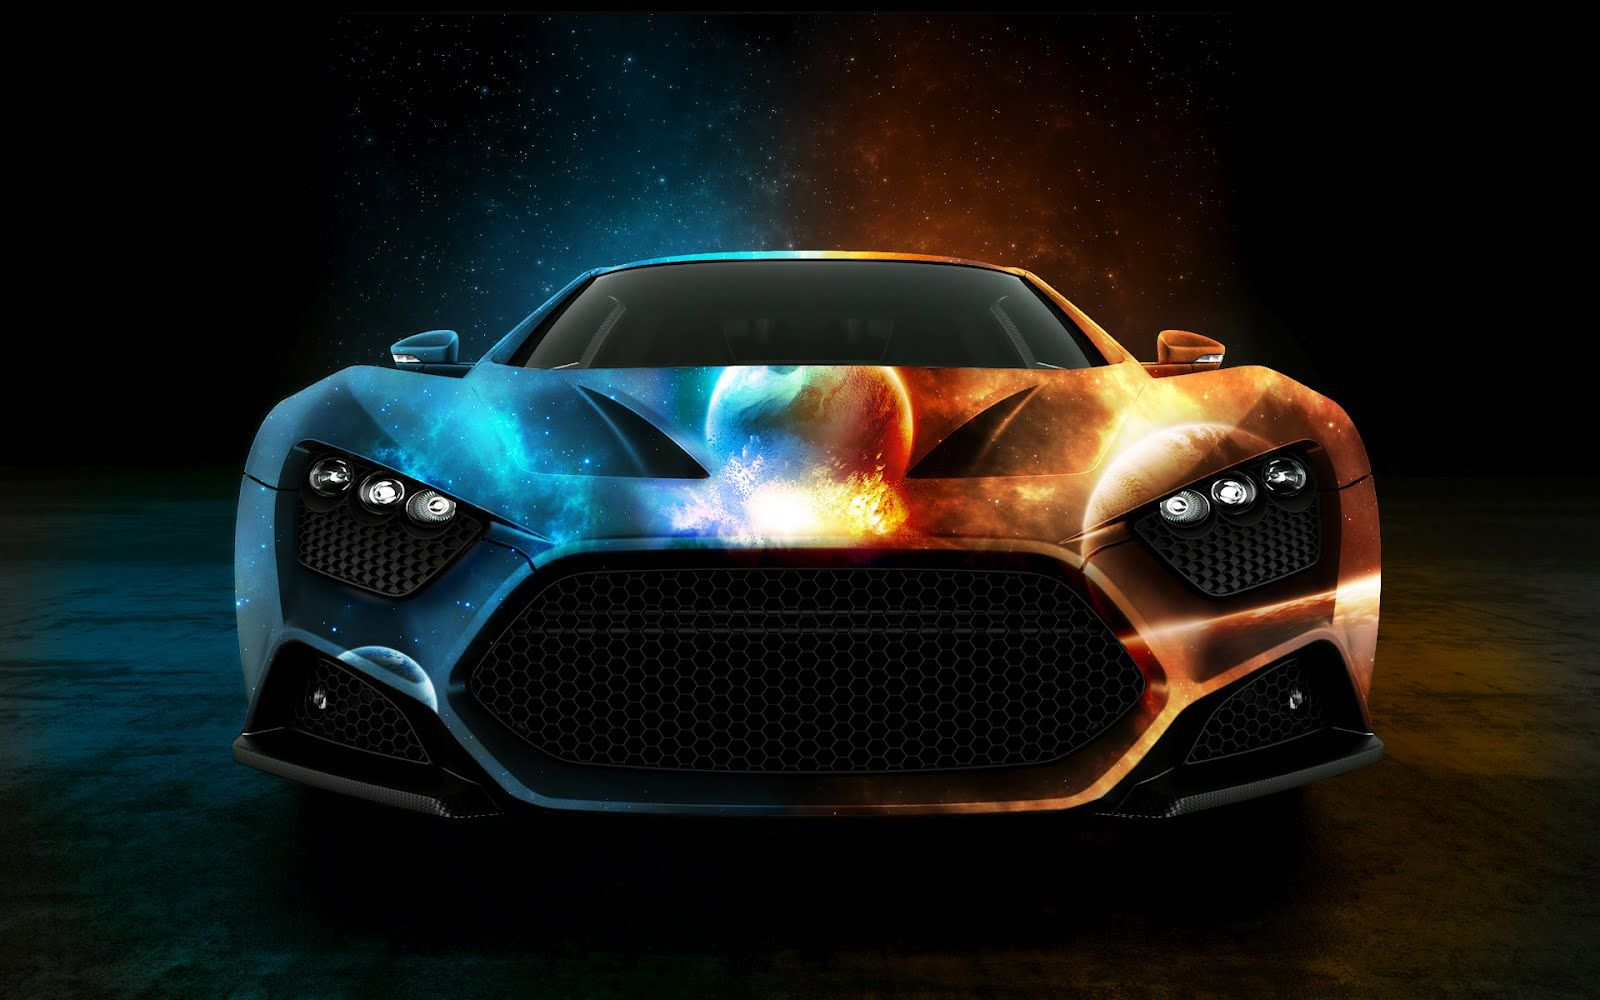 Hd Live Car Wallpapers For Pc Carlazos Info